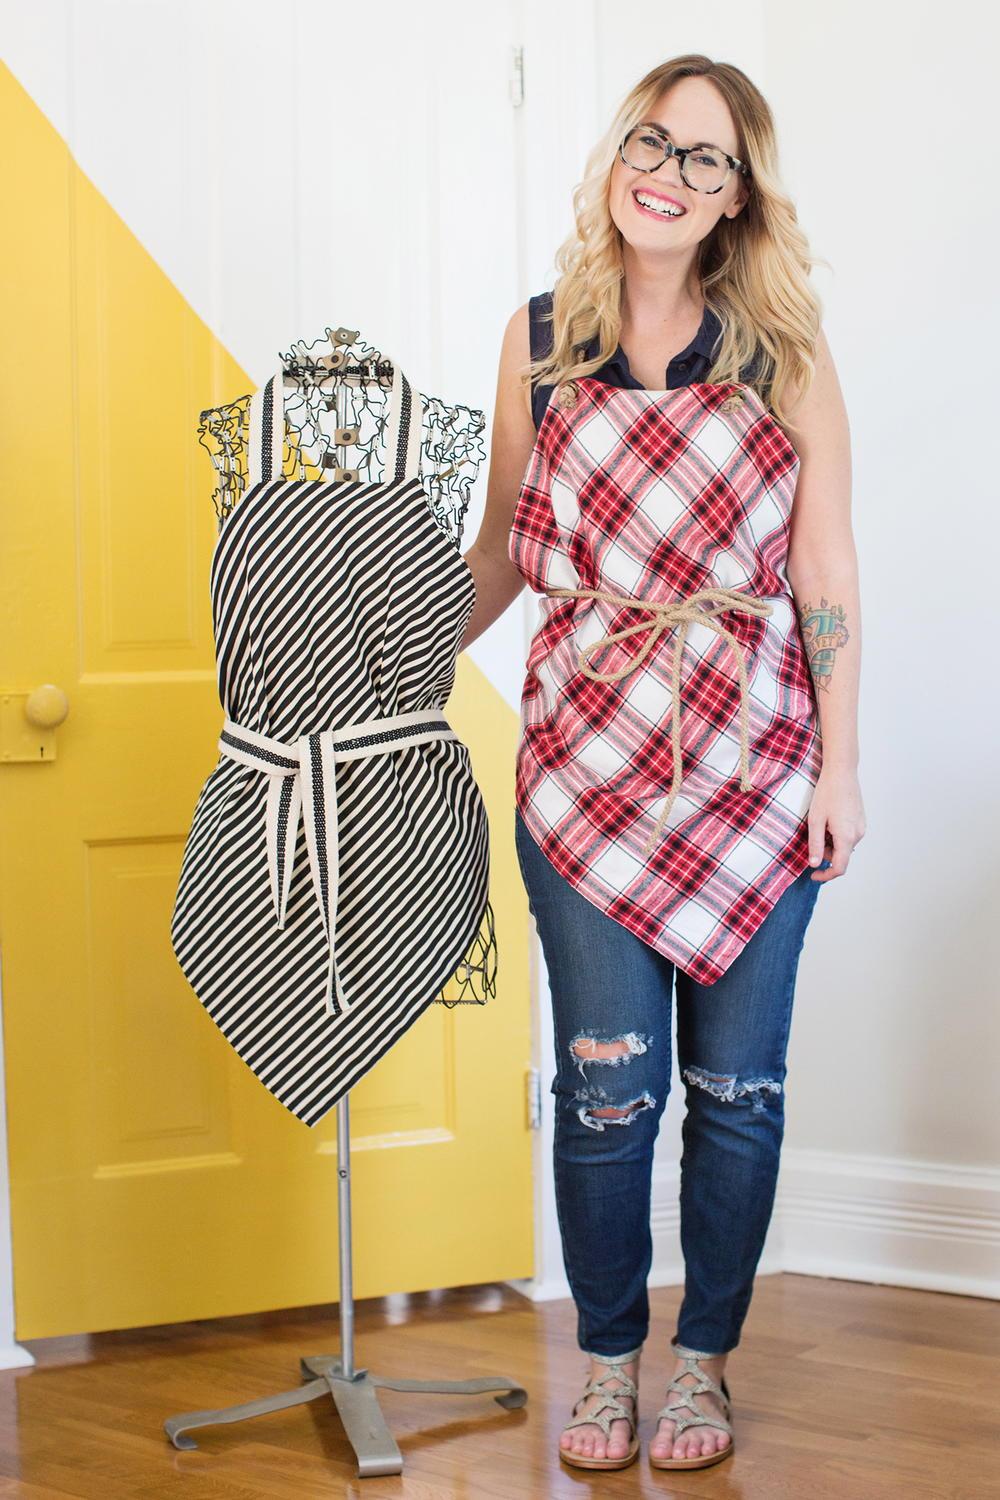 How to sew aprons 42 free patterns for aprons allfreesewing apron patterns for sewing beginners jeuxipadfo Gallery